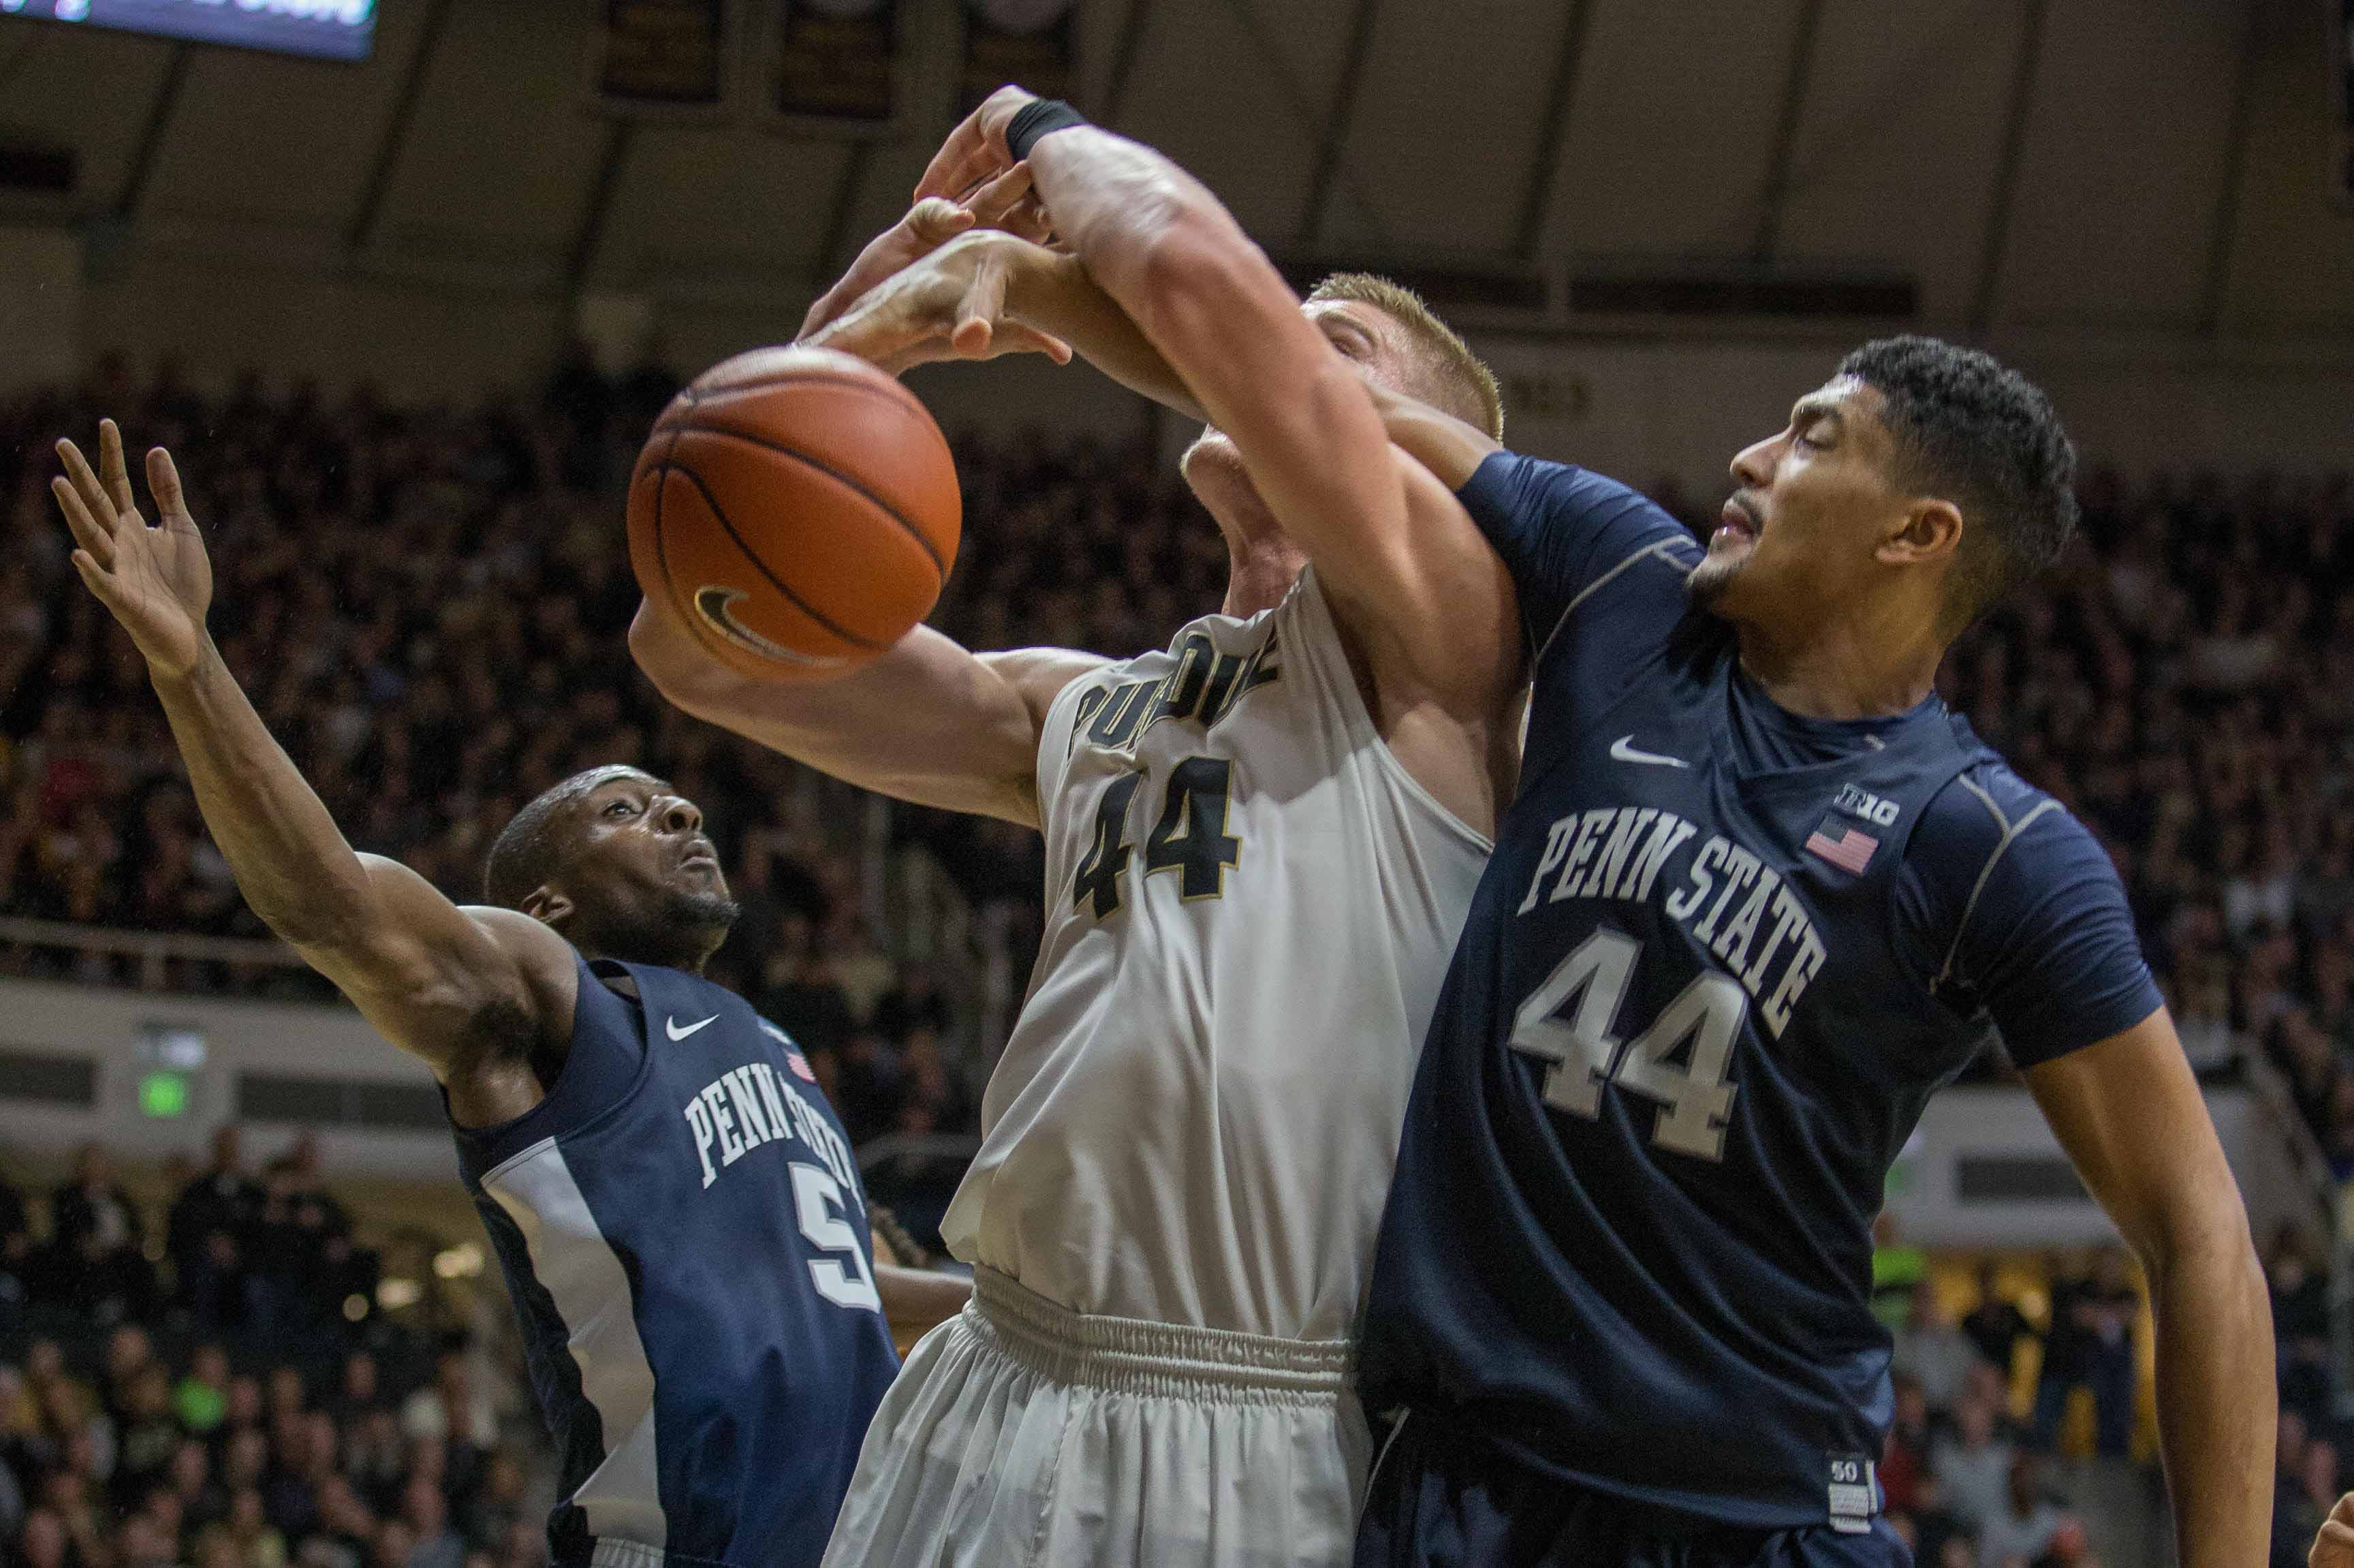 9827294-ncaa-basketball-penn-state-at-purdue